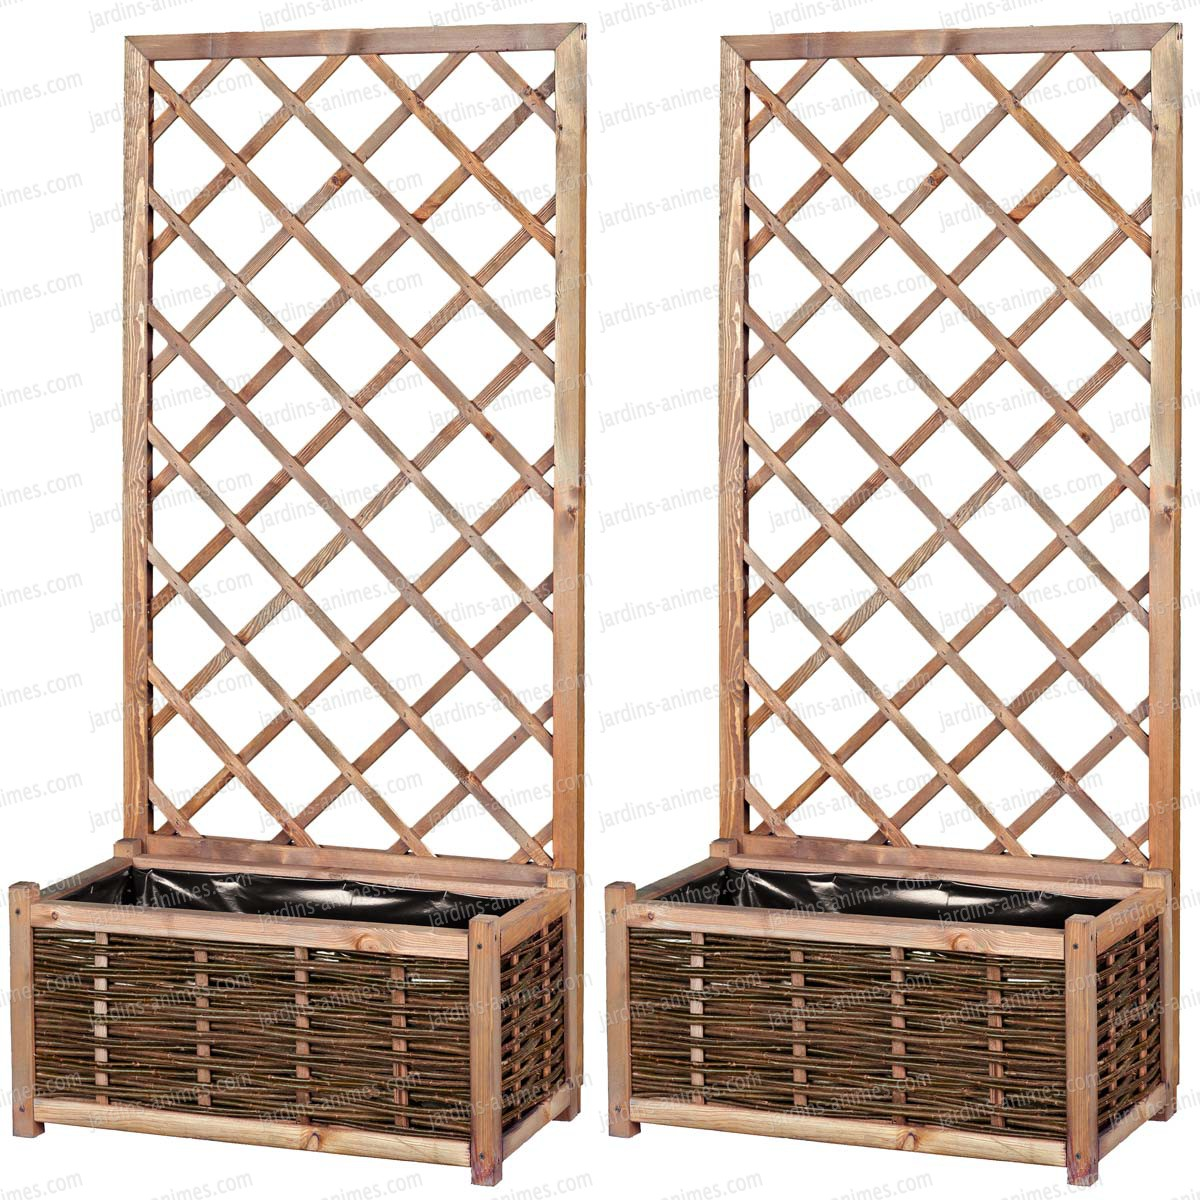 lot de 2 bac jardiniere et treillis en pin fsc mobilier de jardin. Black Bedroom Furniture Sets. Home Design Ideas